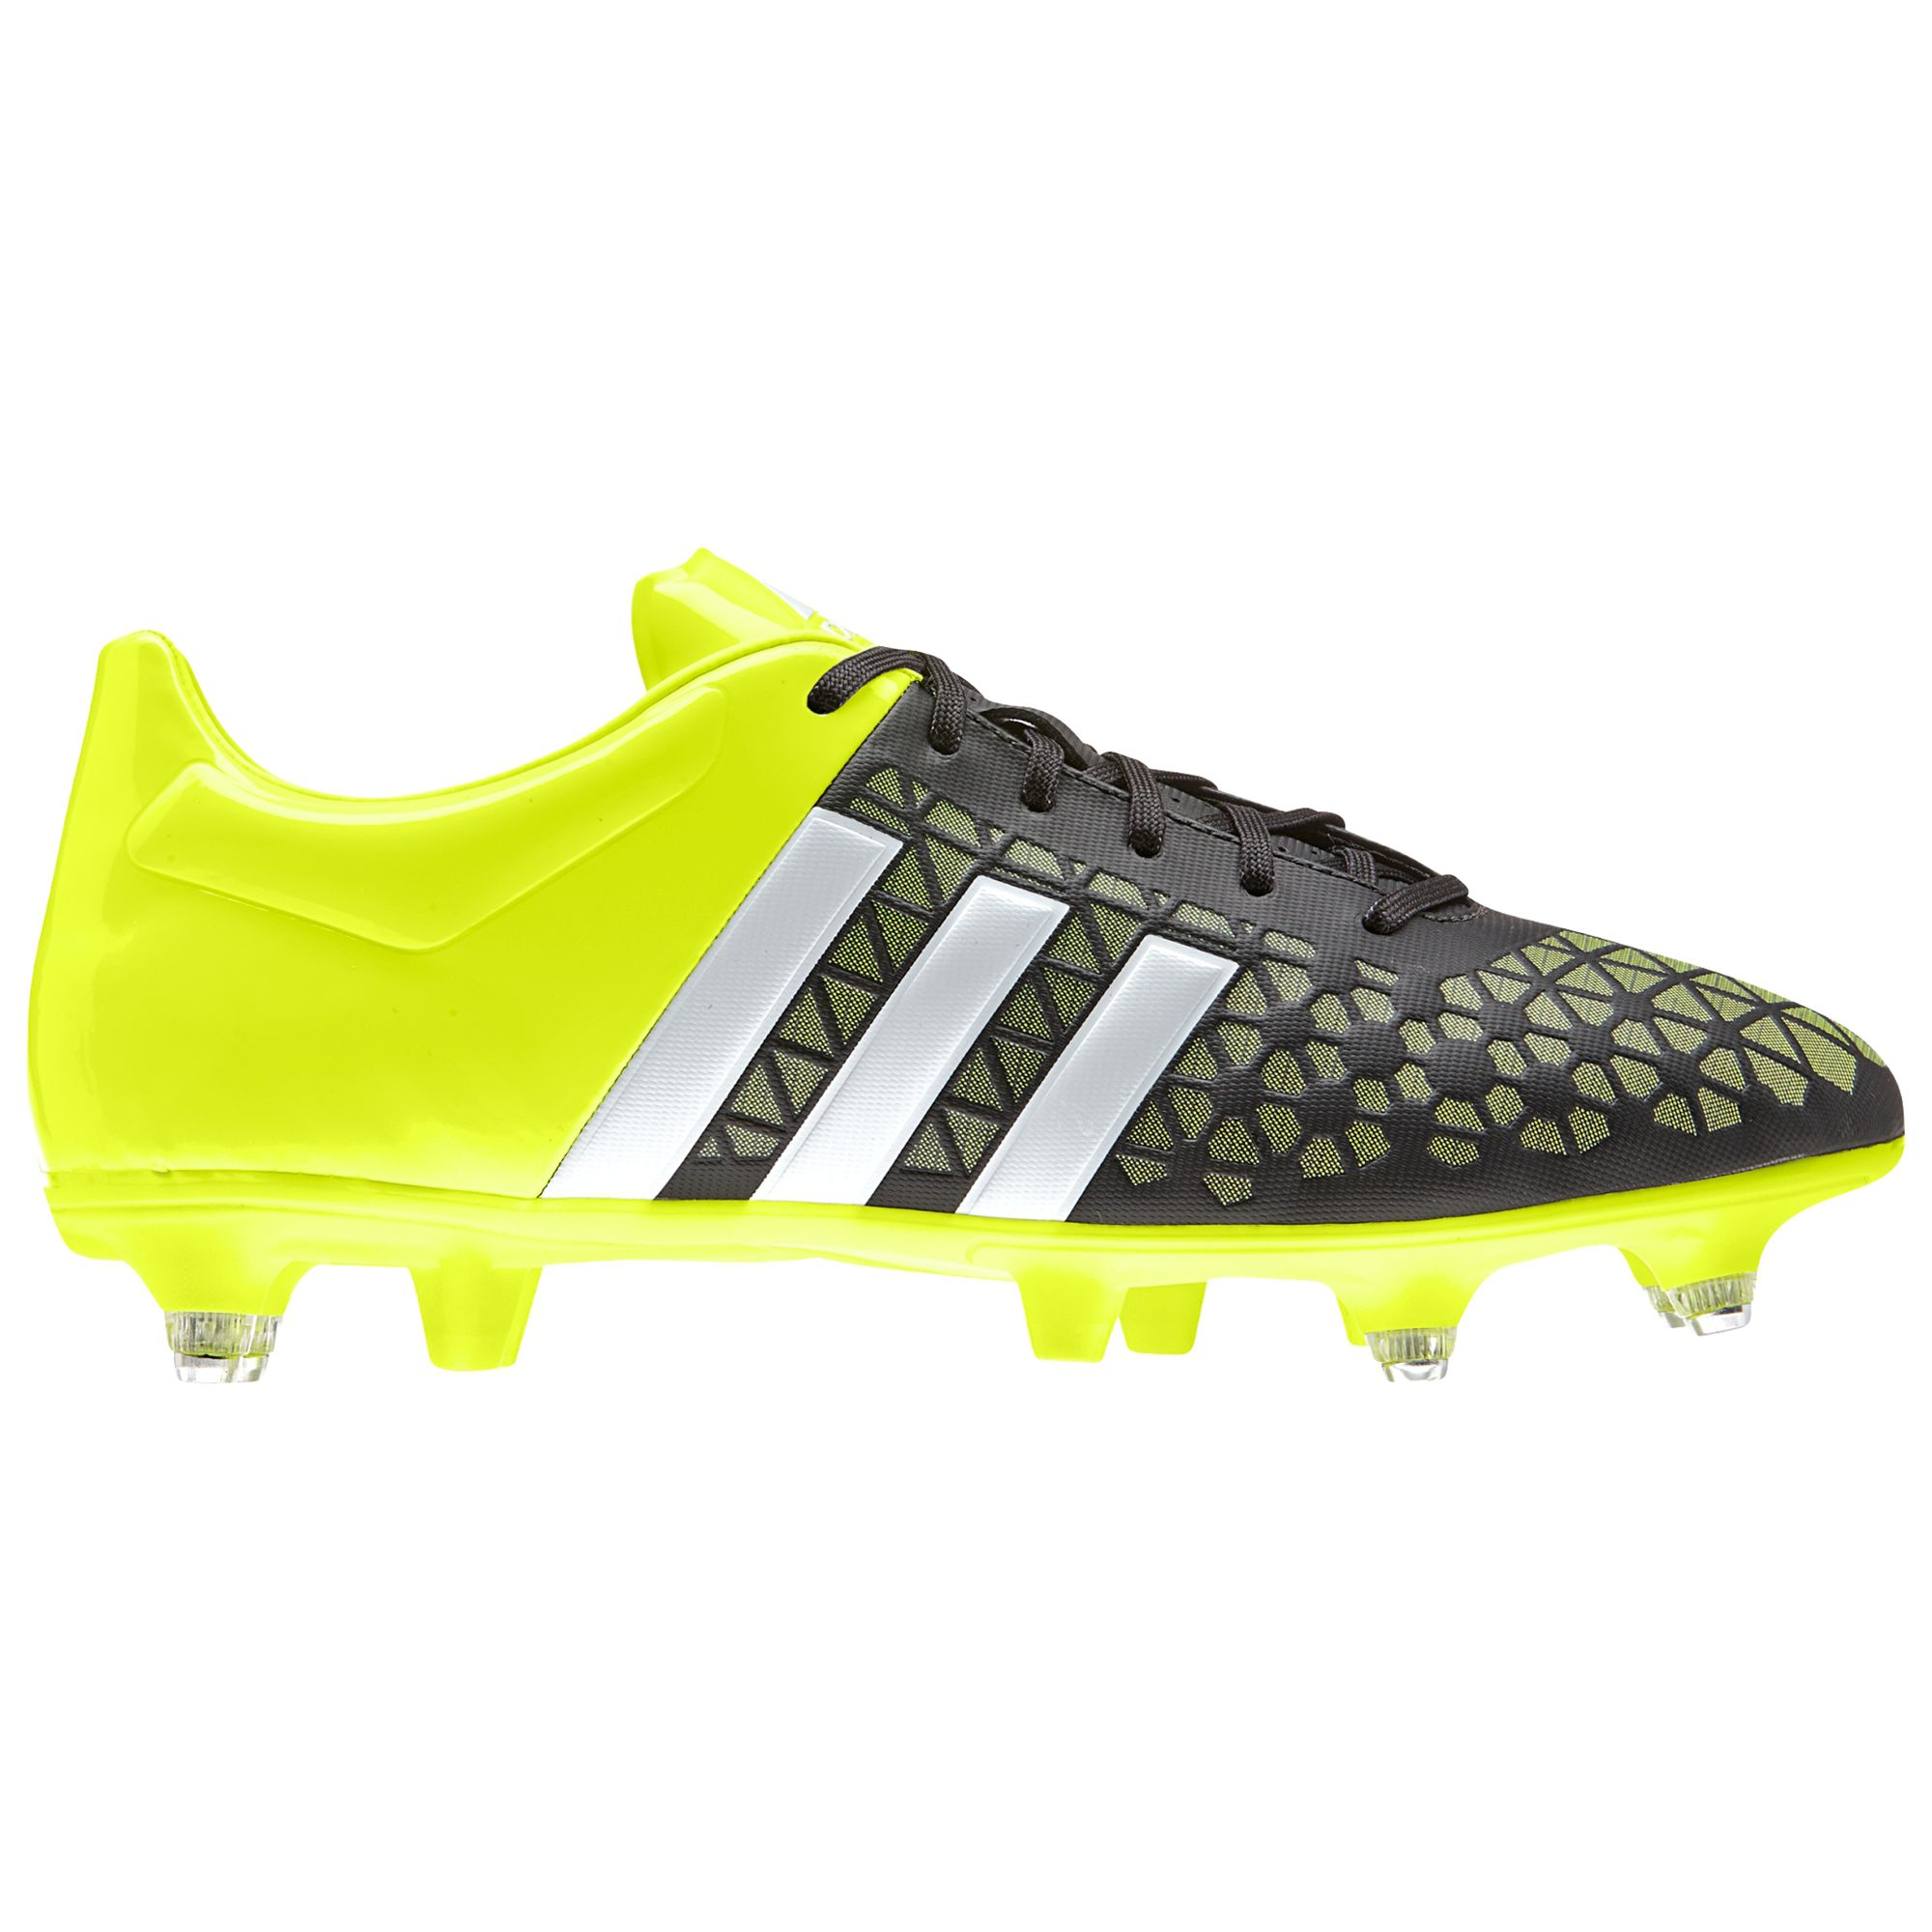 reputable site b08eb 7d66a Adidas Ace 15.3 Soft Ground Men's Football Boots, Core Black ...